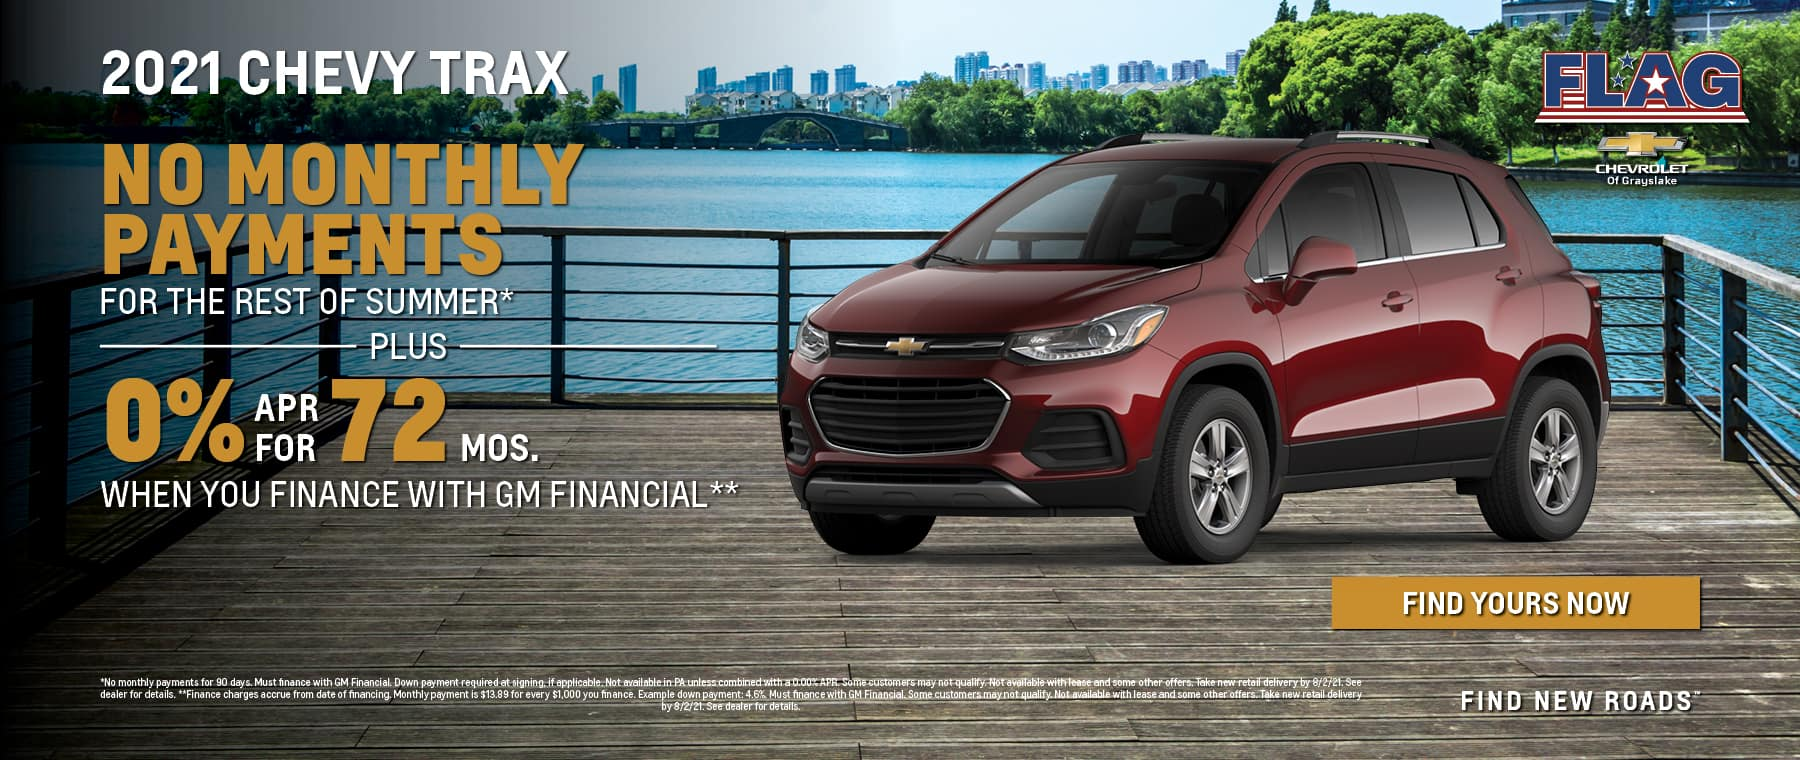 No monthly payments for the rest of summer plus 0% APR for 72 MOS when financing with GM Financial